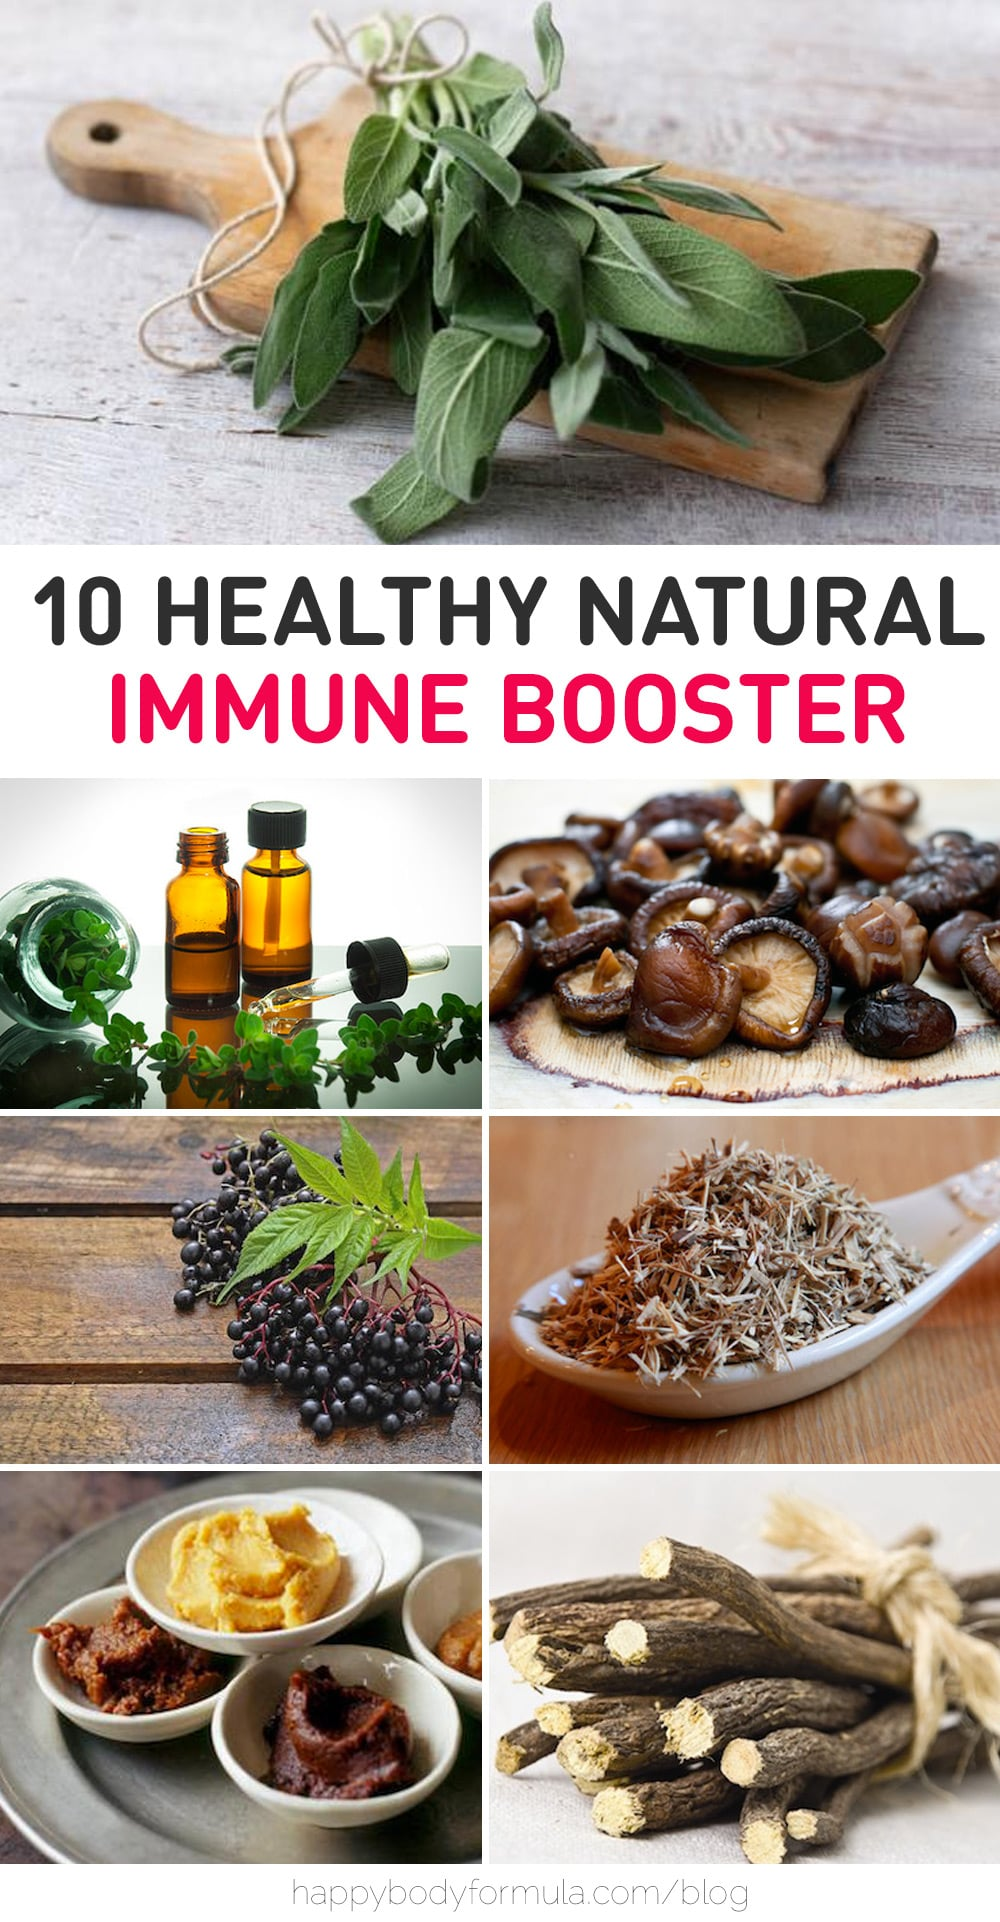 10 Natural Immune Boosters | Happybodyformula.com